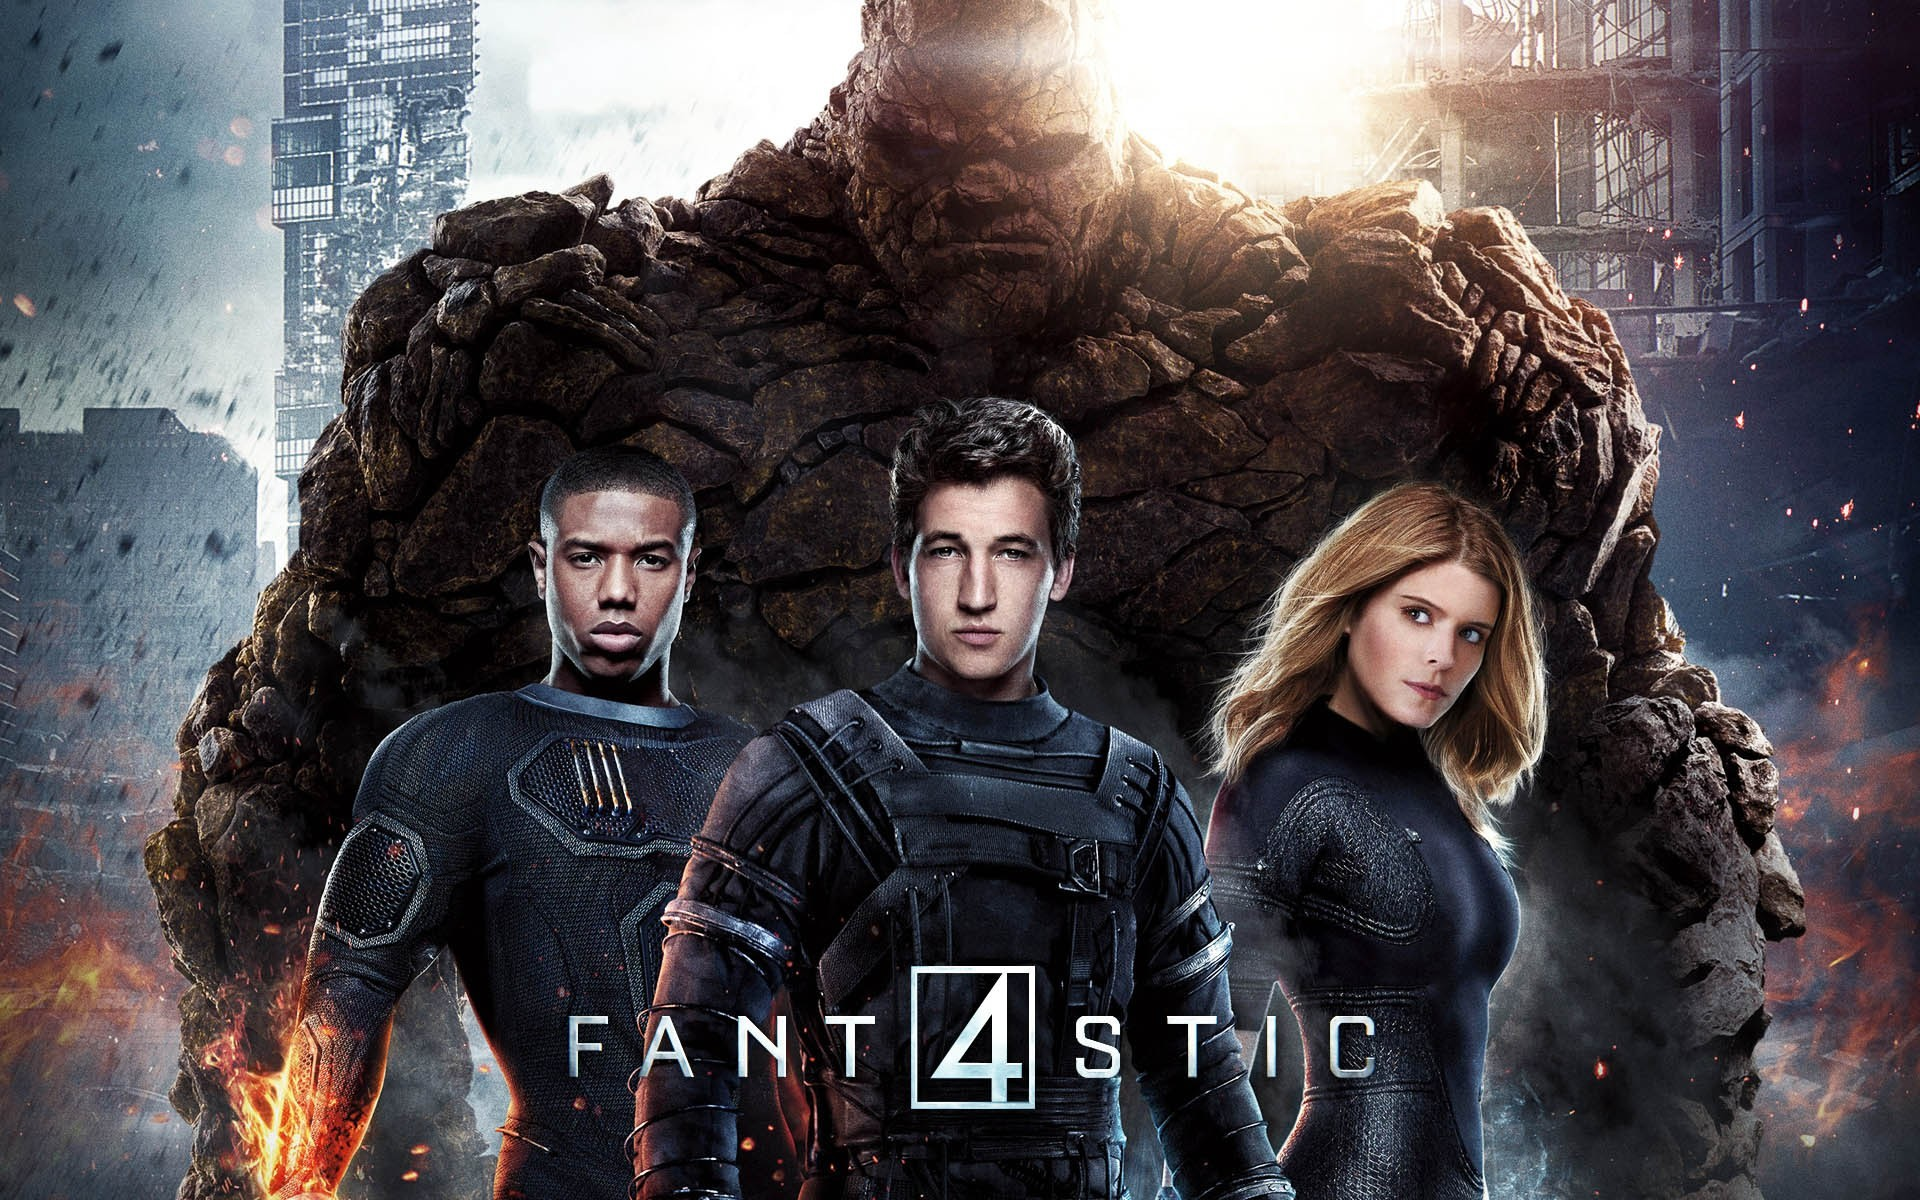 Res: 1920x1200, fantastic-four-2015-wallpaper-movie-poster-thing-human-torch -mr-fantastic-invisible-woman